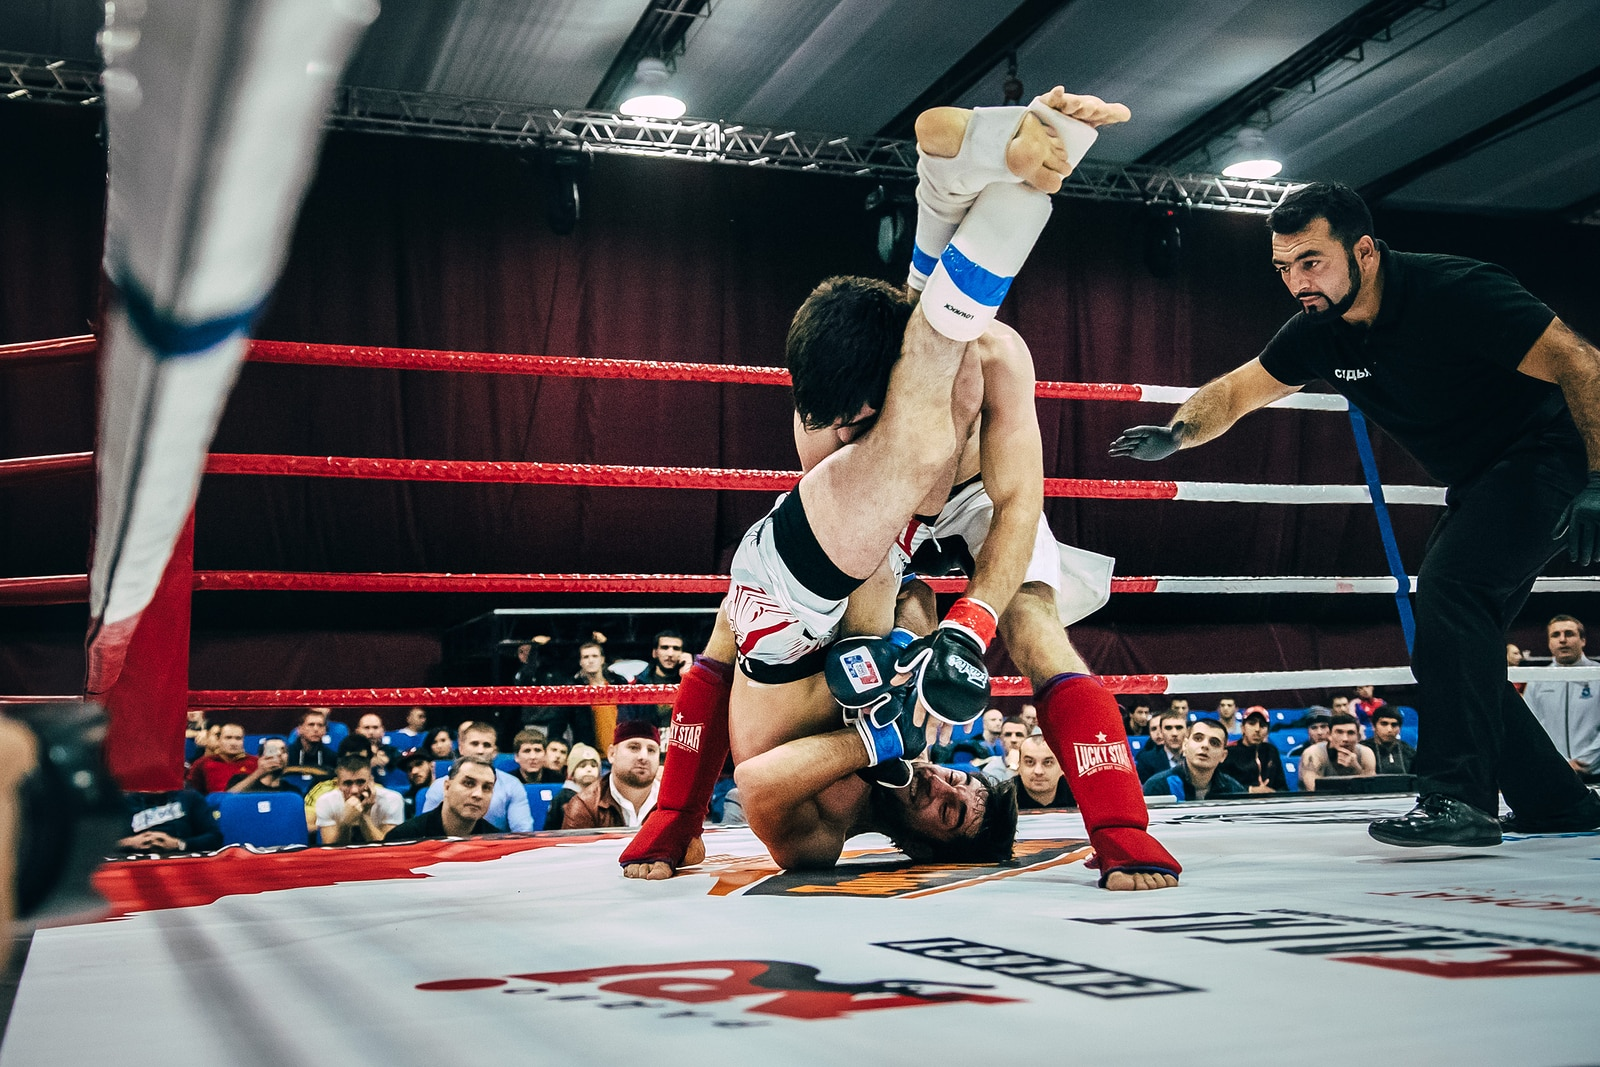 Keys to Success You Need to Know as an MMA Fighter